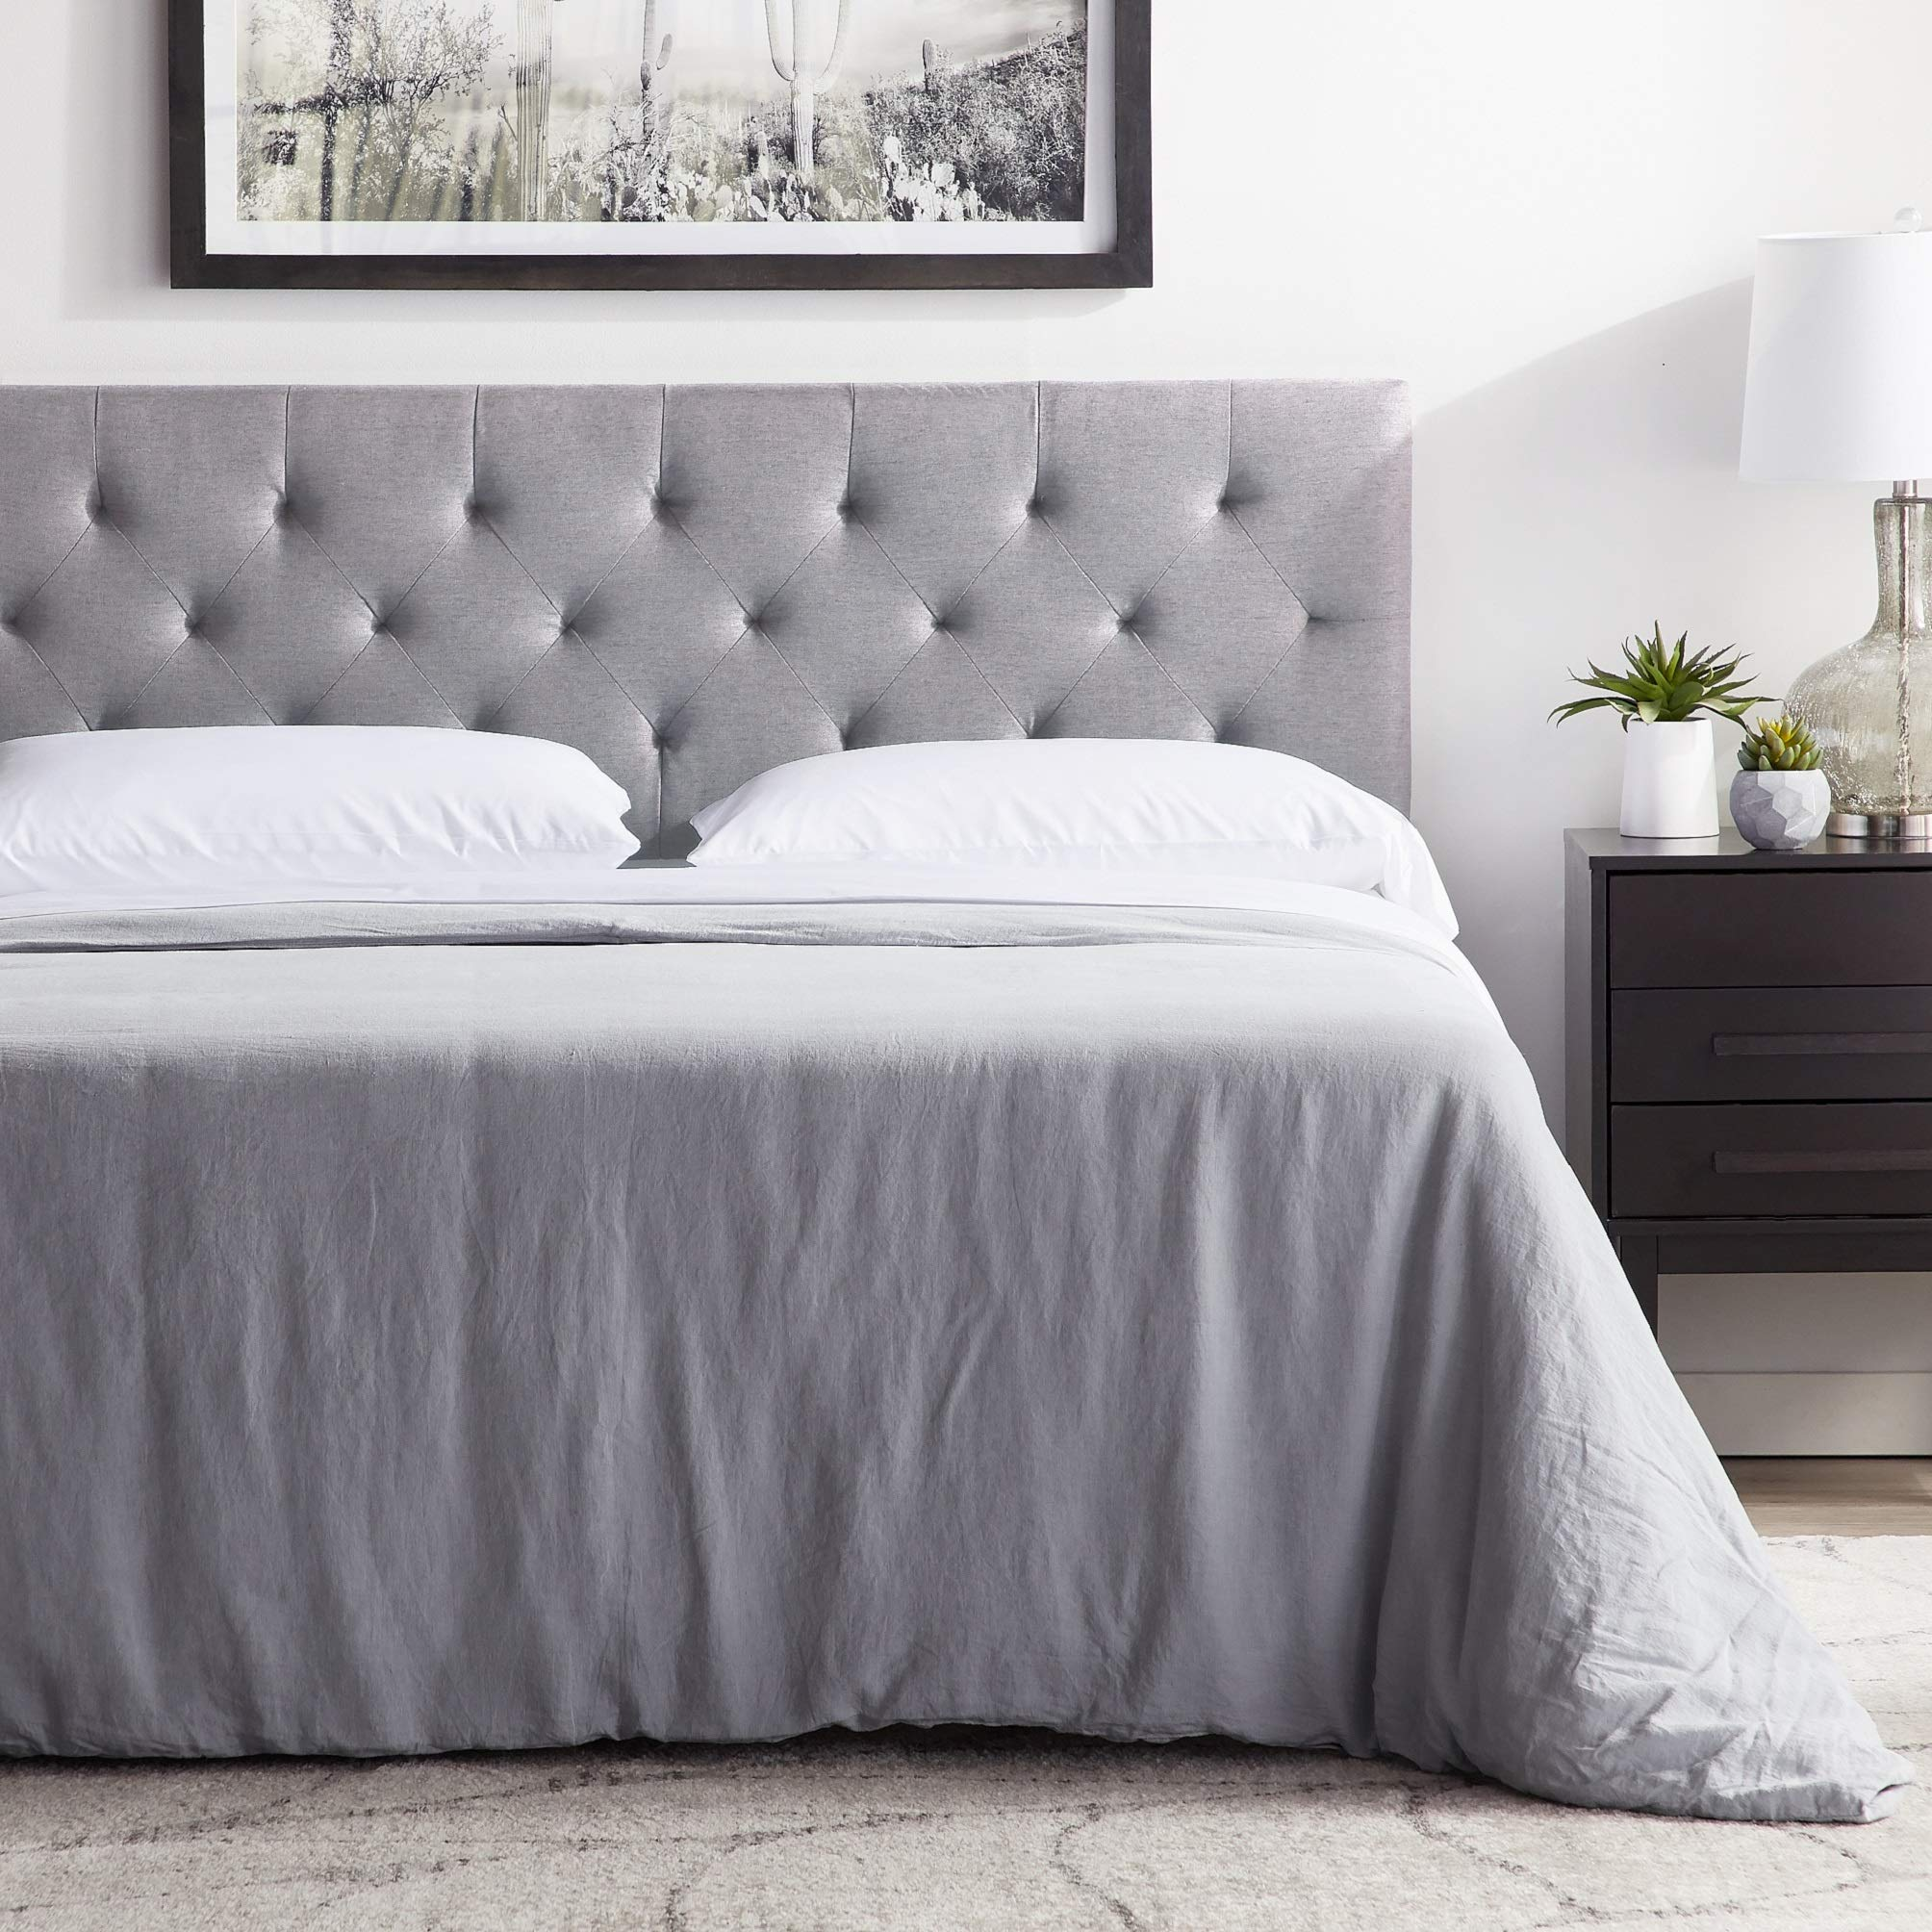 LUCID Mid-Rise Upholstered Headboard - Adjustable Height from 34'' to 46'' - King/California King - Stone by LUCID